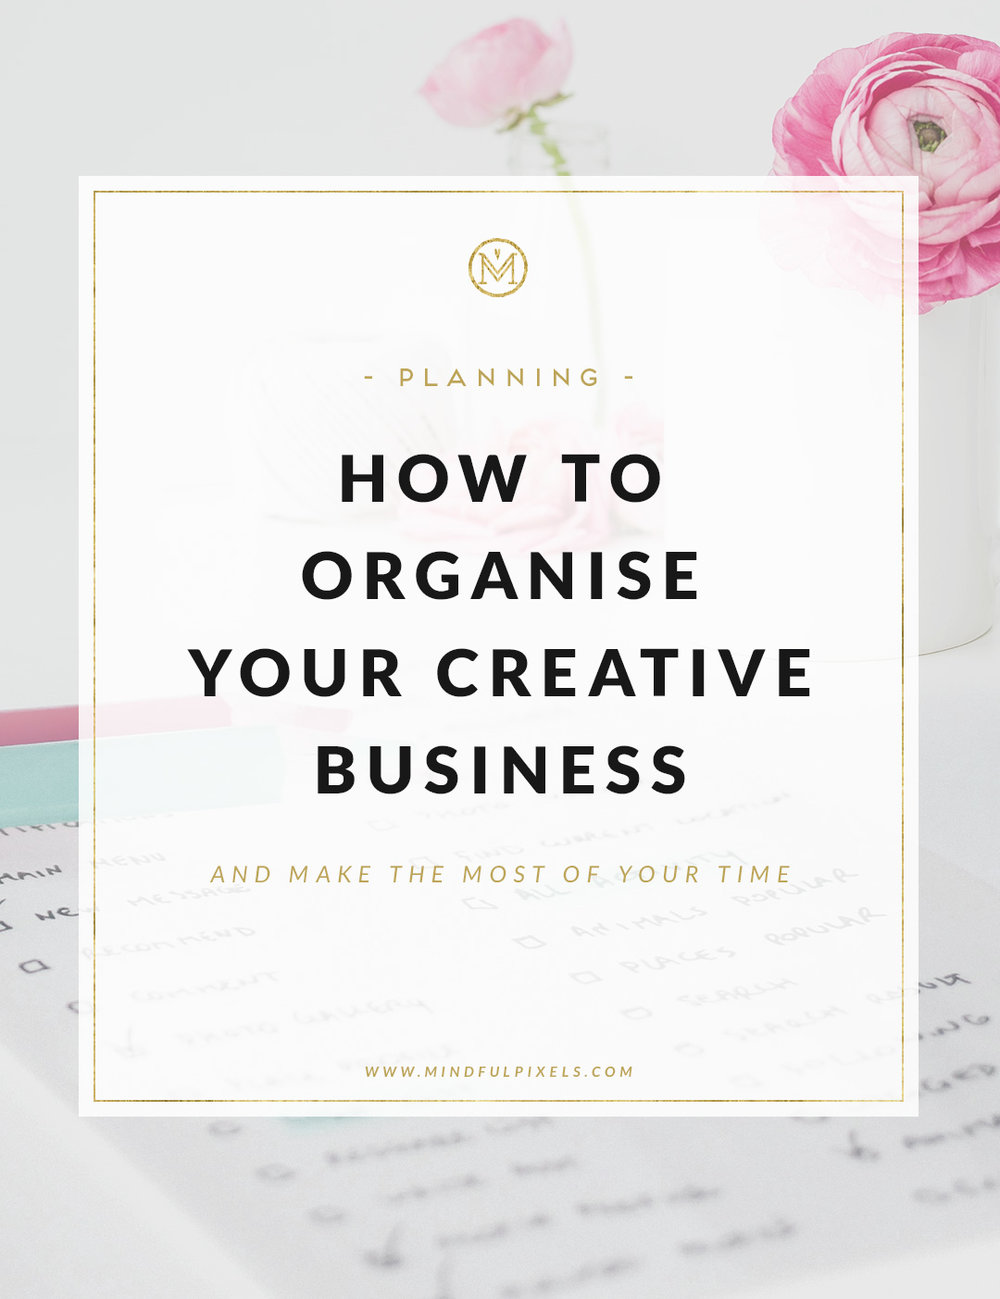 How to Organize Your Creative Business — The Three Pillars of Successful Planning